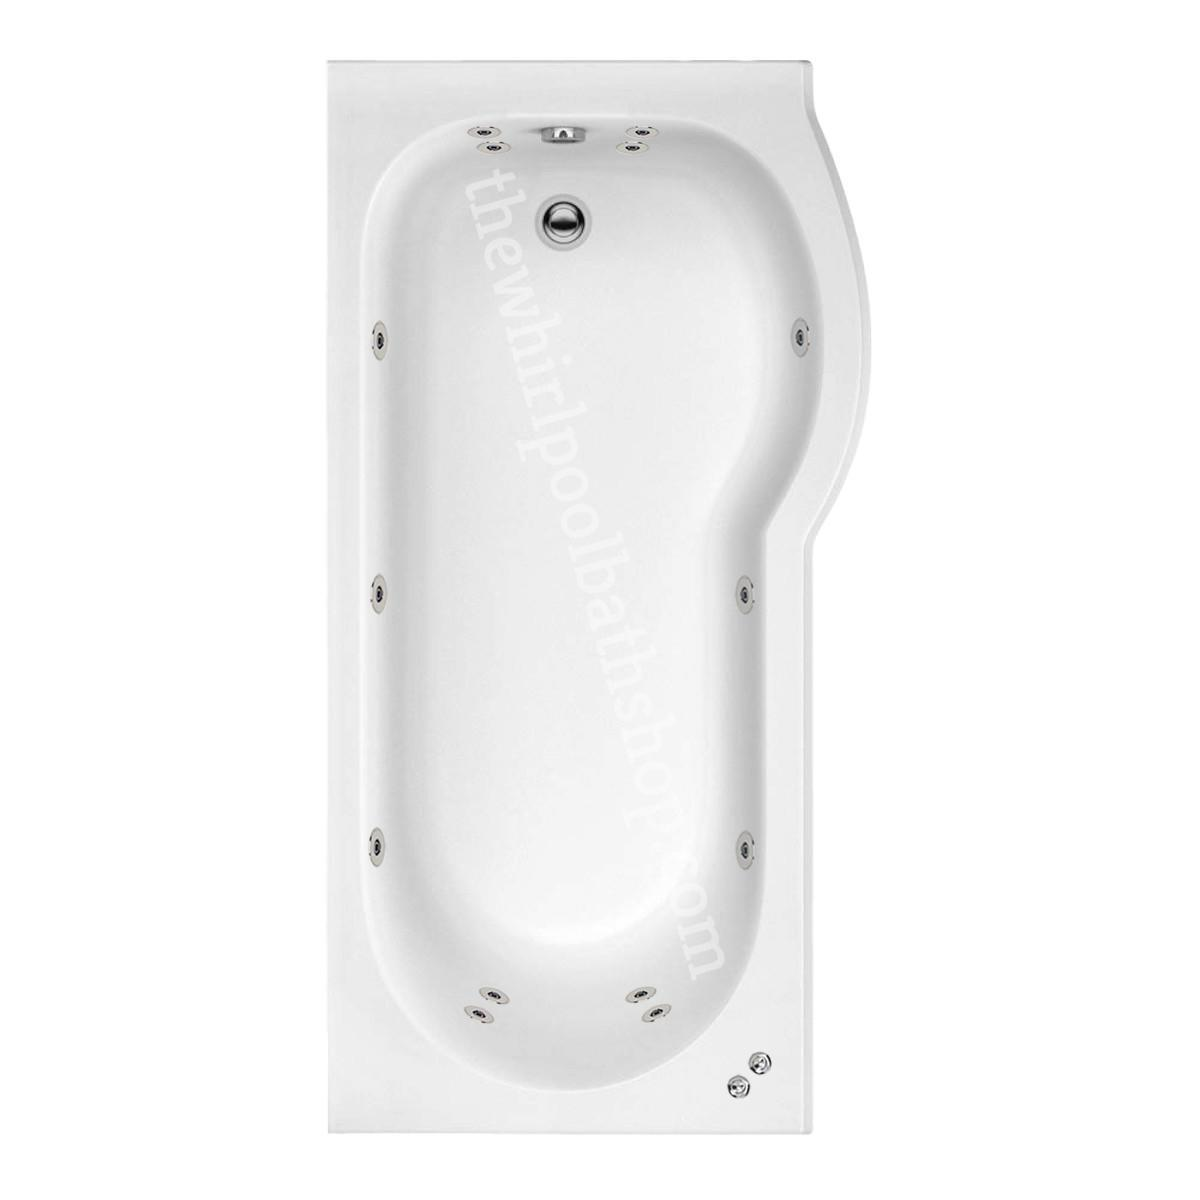 14 jet Trojan Concert 1600 mm Right Hand P Shaped Whirlpool Shower Bath